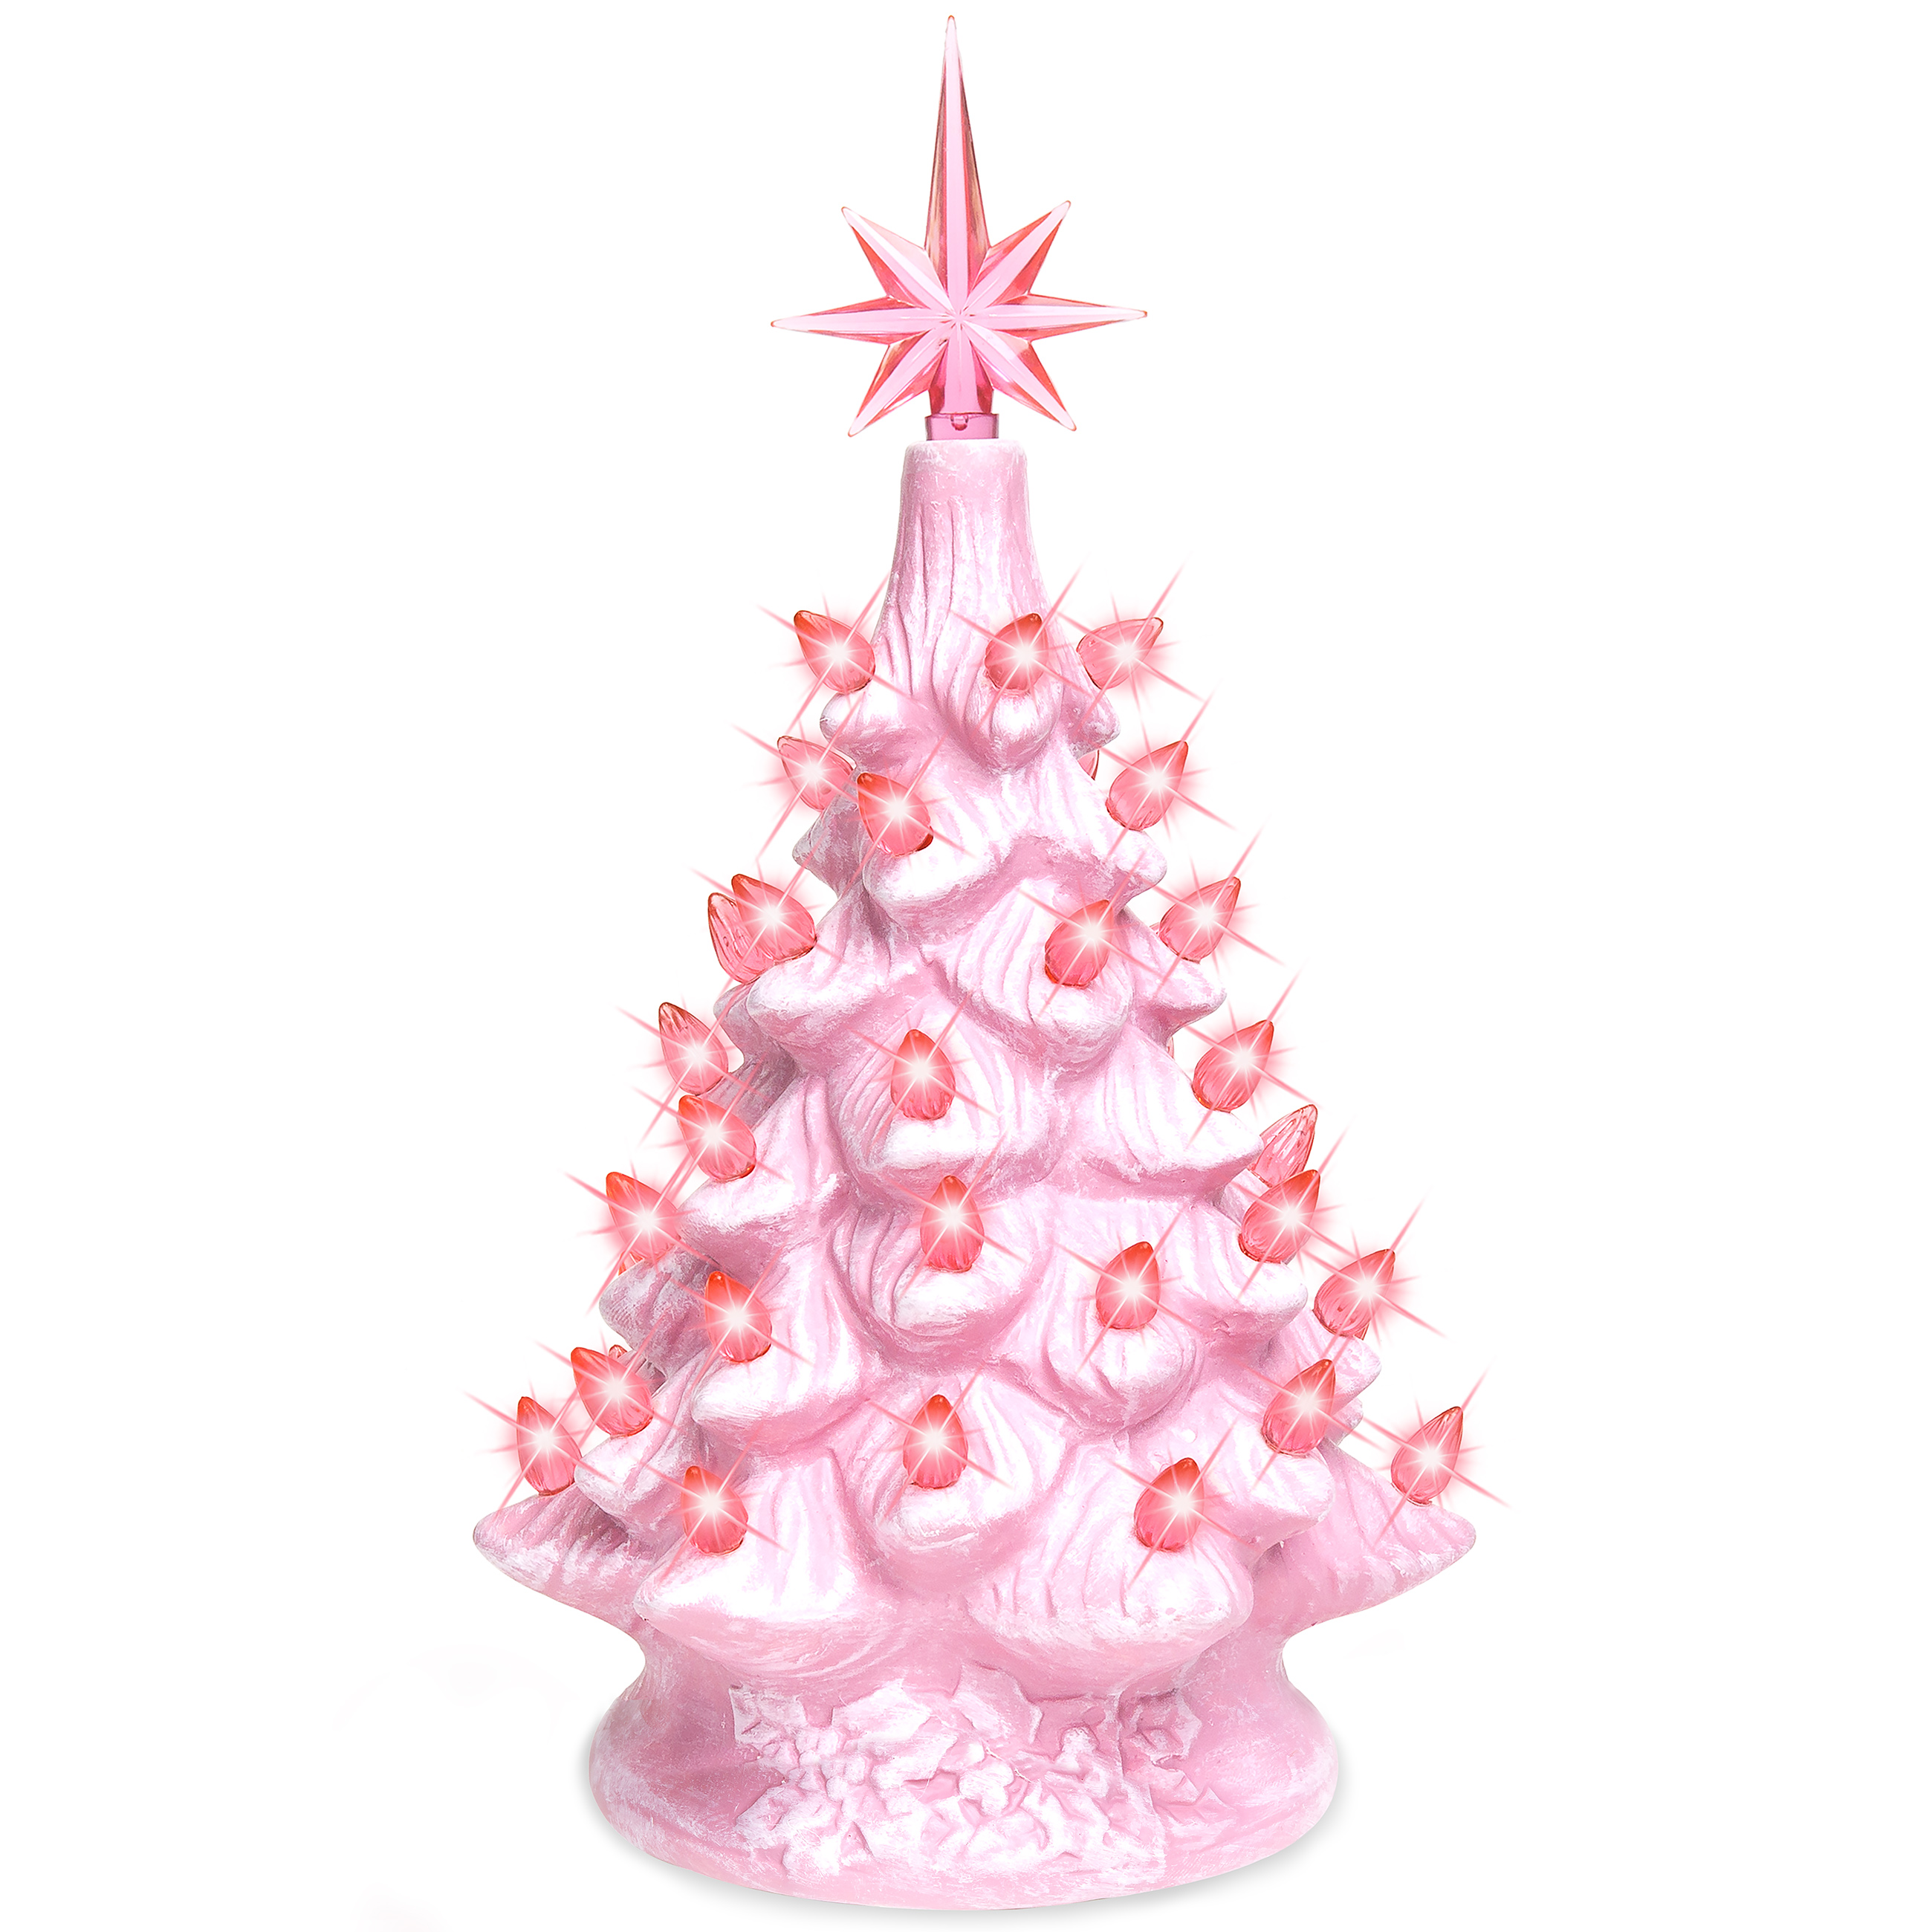 Exceptional Best Choice Products 11in Prelit Ceramic Tabletop Christmas Tree W/ Lights    Pink